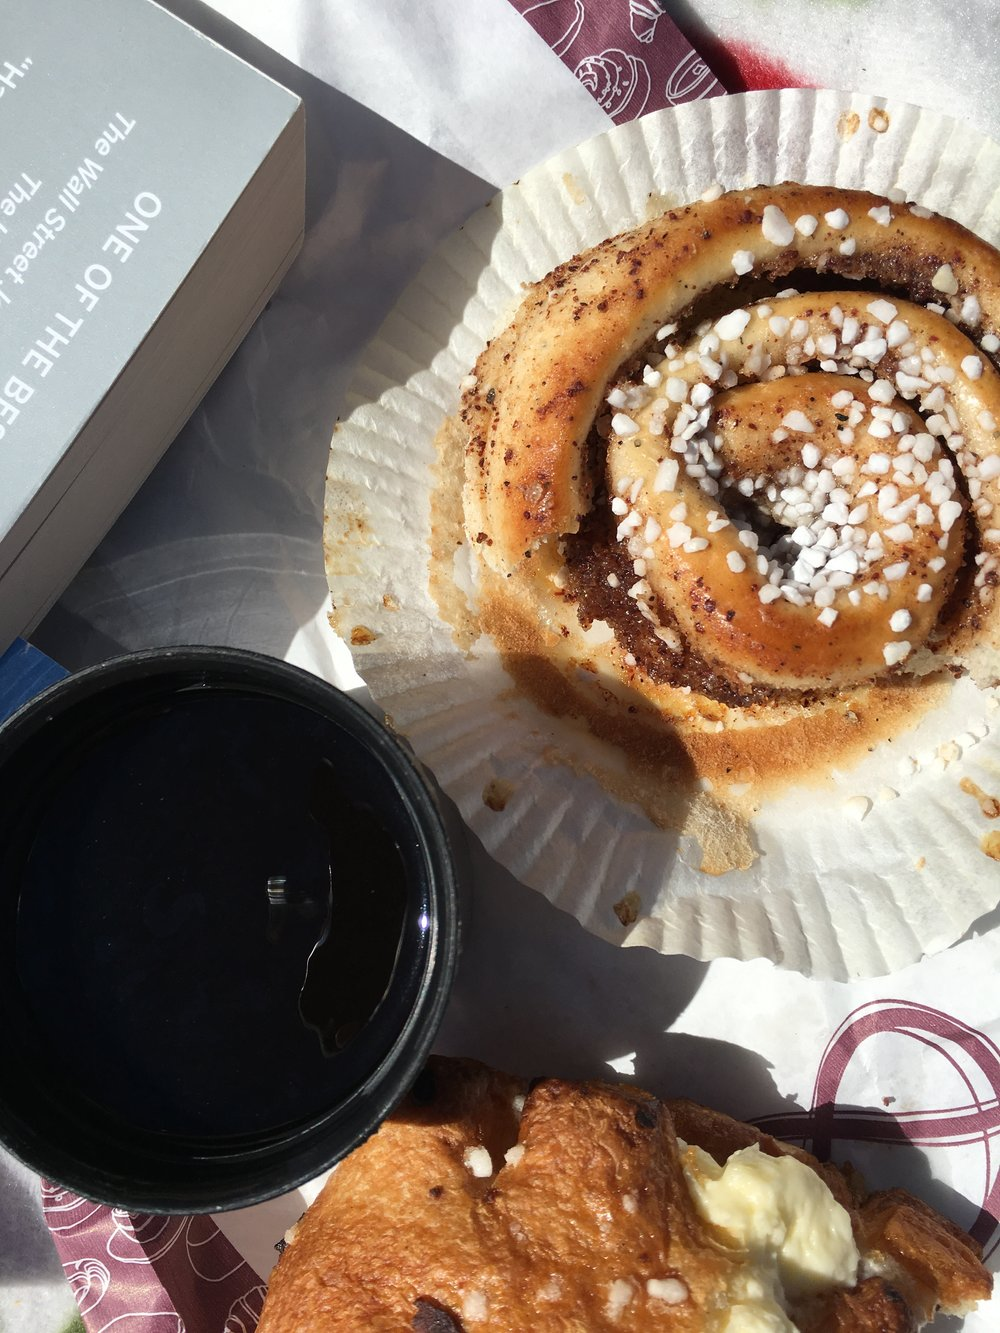 Weekly Travel Highlight: Fika in Hono, Sweden